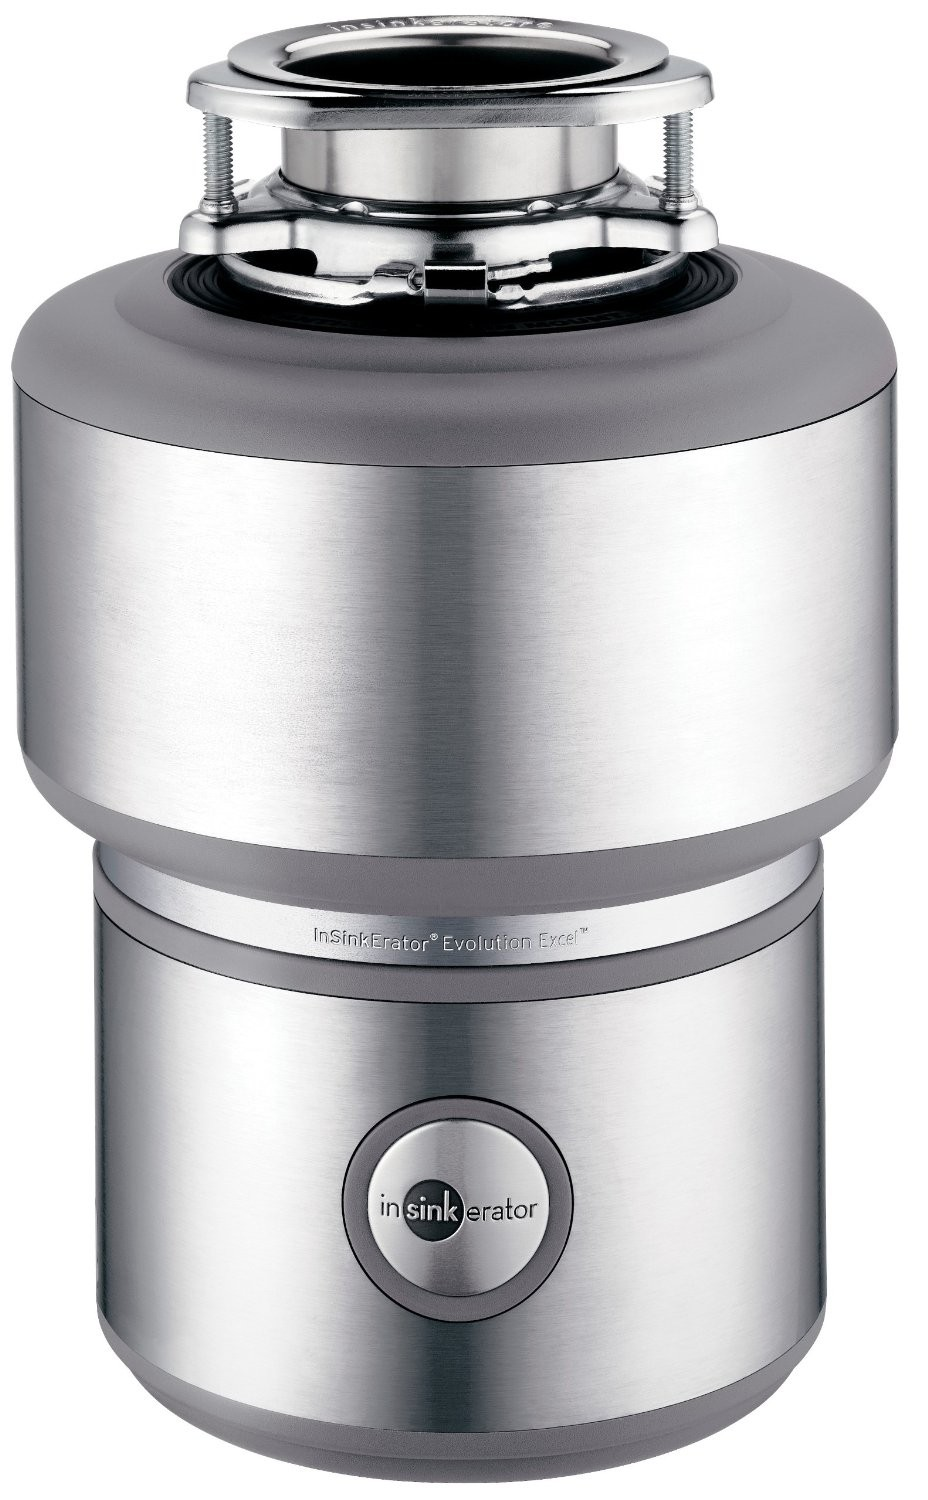 Buy the Insinkerator EXCEL Evolution Garbage Disposal ~ 1 HP ...